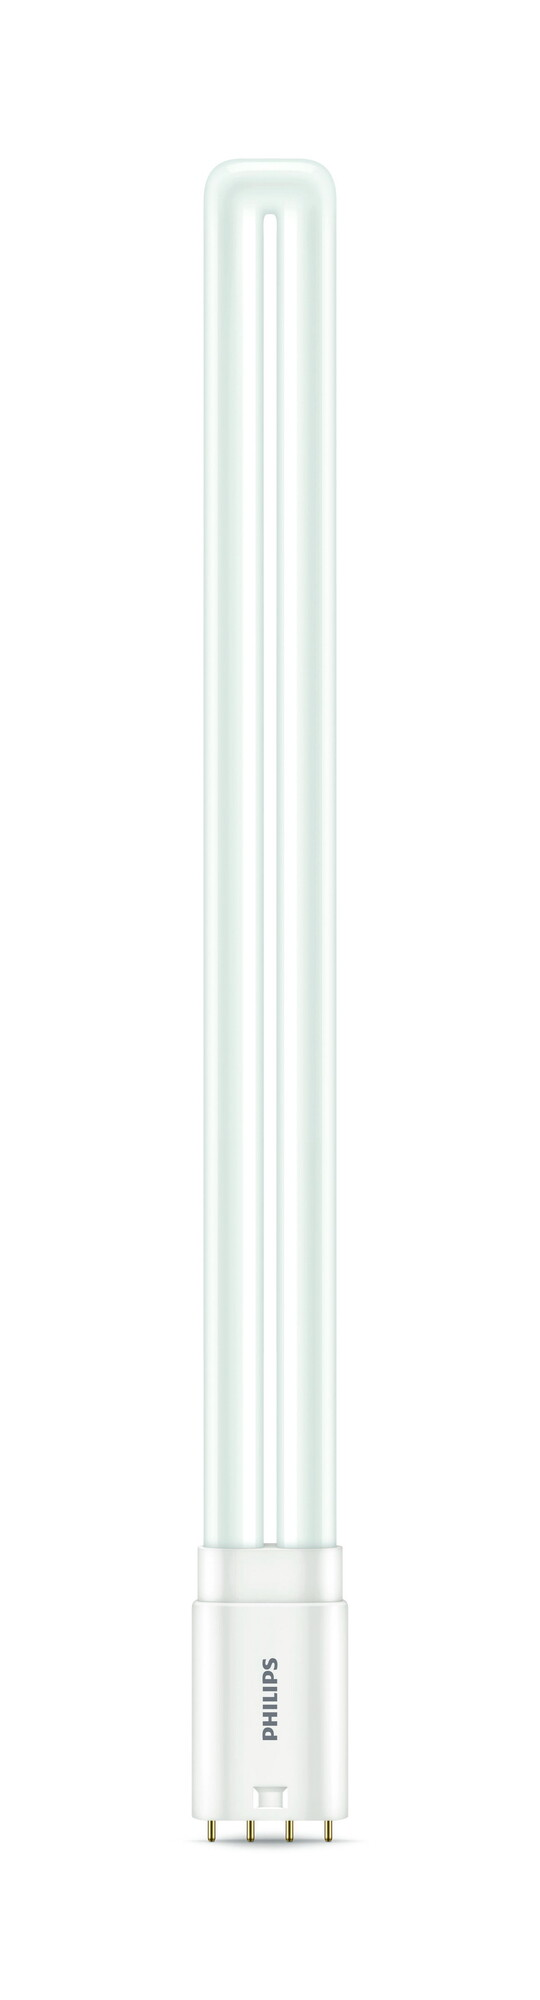 Philips Corepro 2G11 24W 3400lm 4000K Tube Opaque